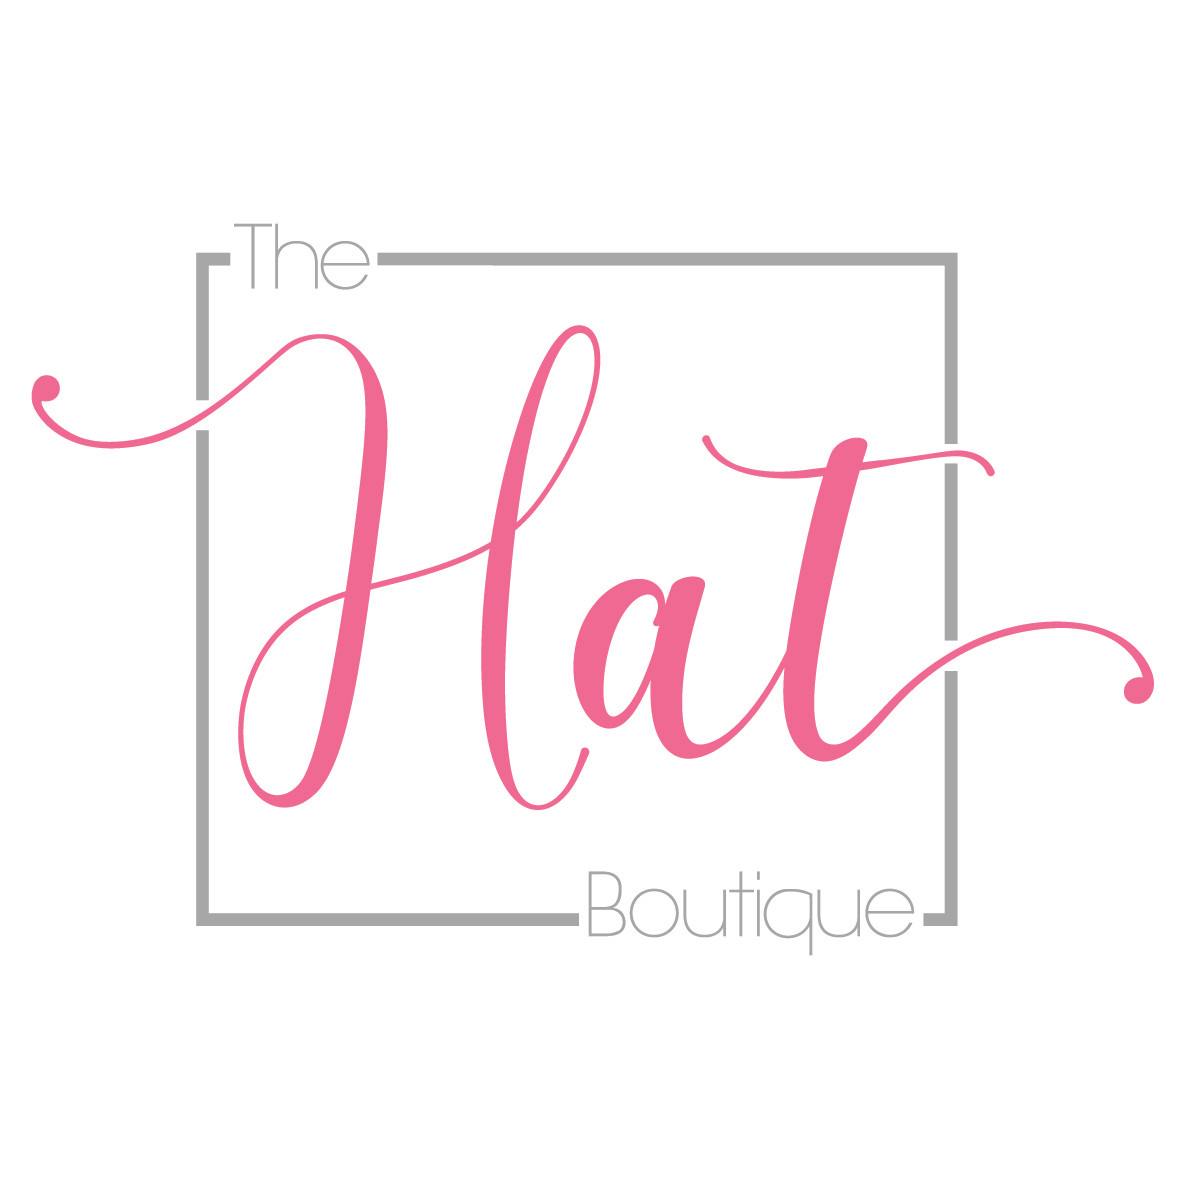 THE HAT BOUTIQUE-01-01.jpg